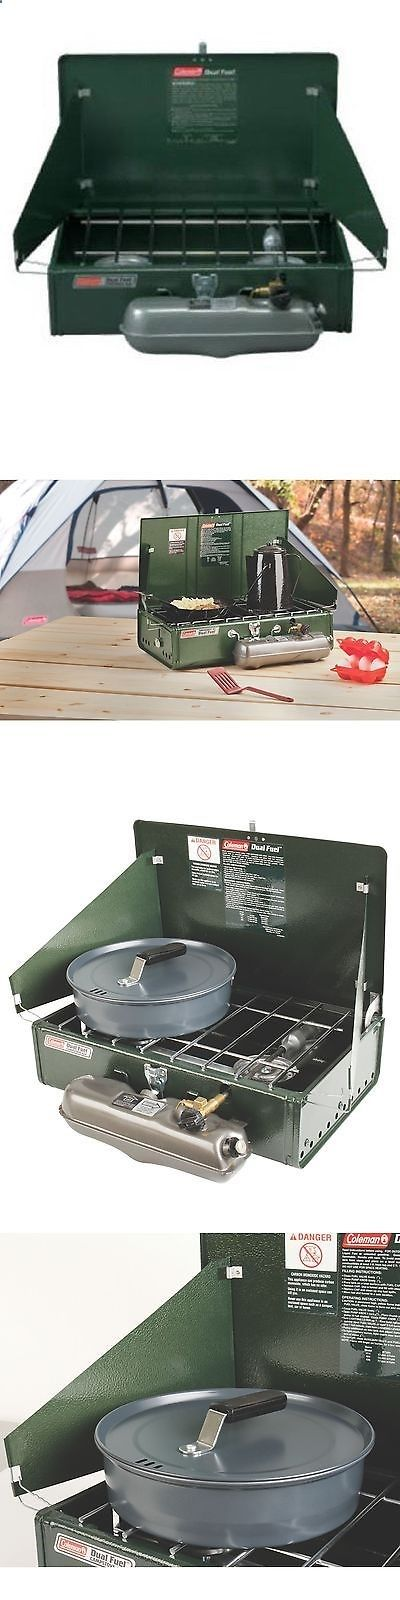 Camping Stoves 181386: Coleman Guide Series Dual Fuel Stove -> BUY IT NOW ONLY: $88.61 on eBay!